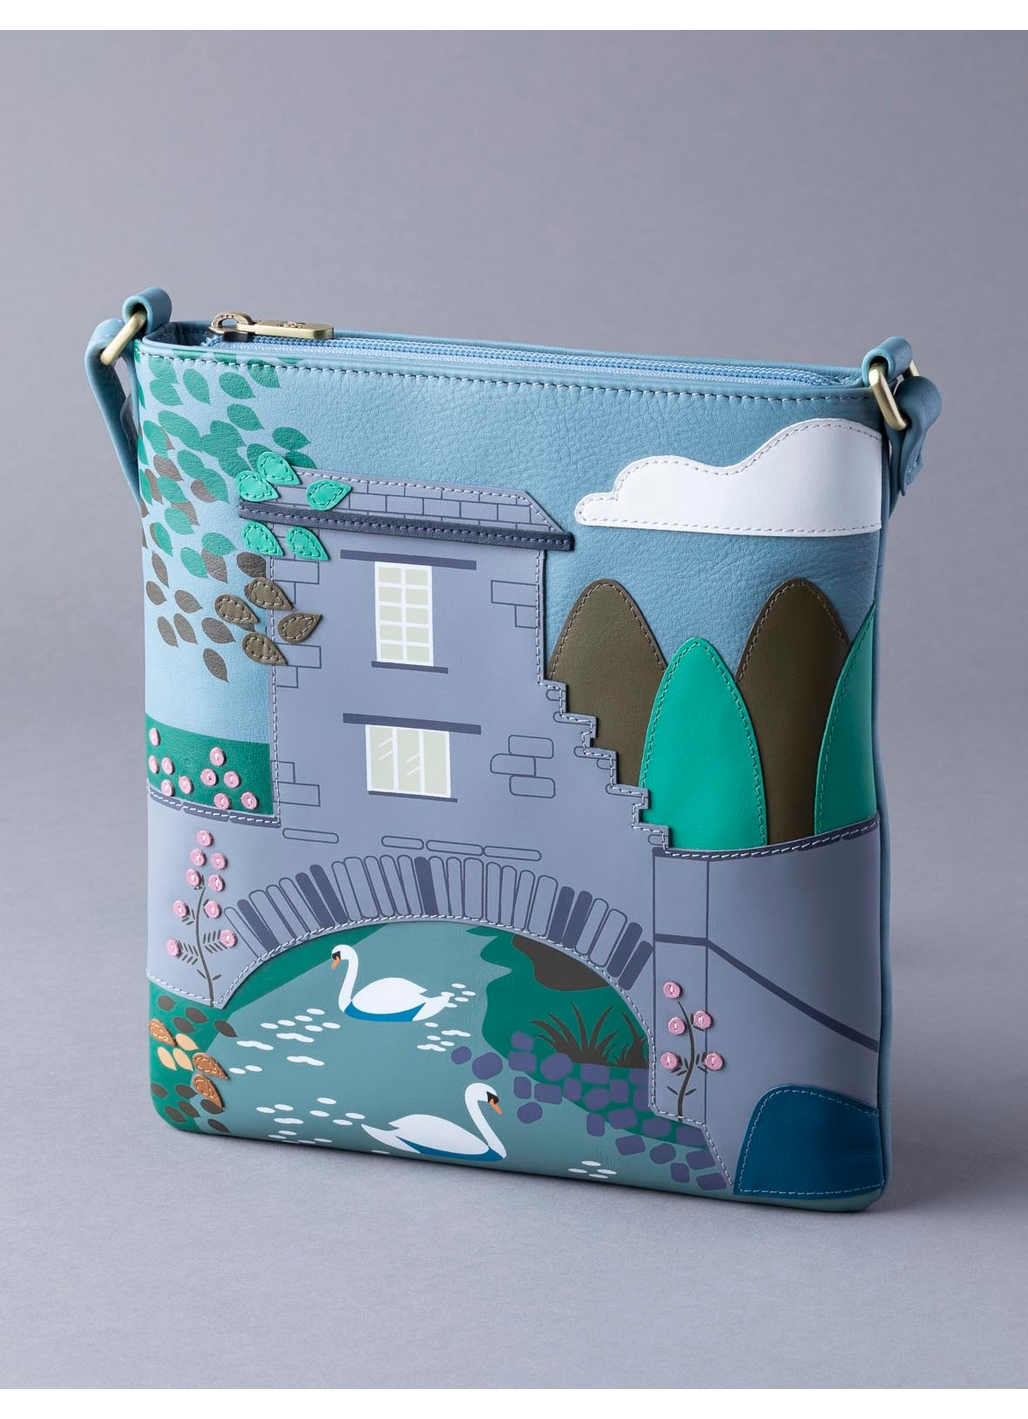 The Lakes Bridge House Cross Body Bag in Blue